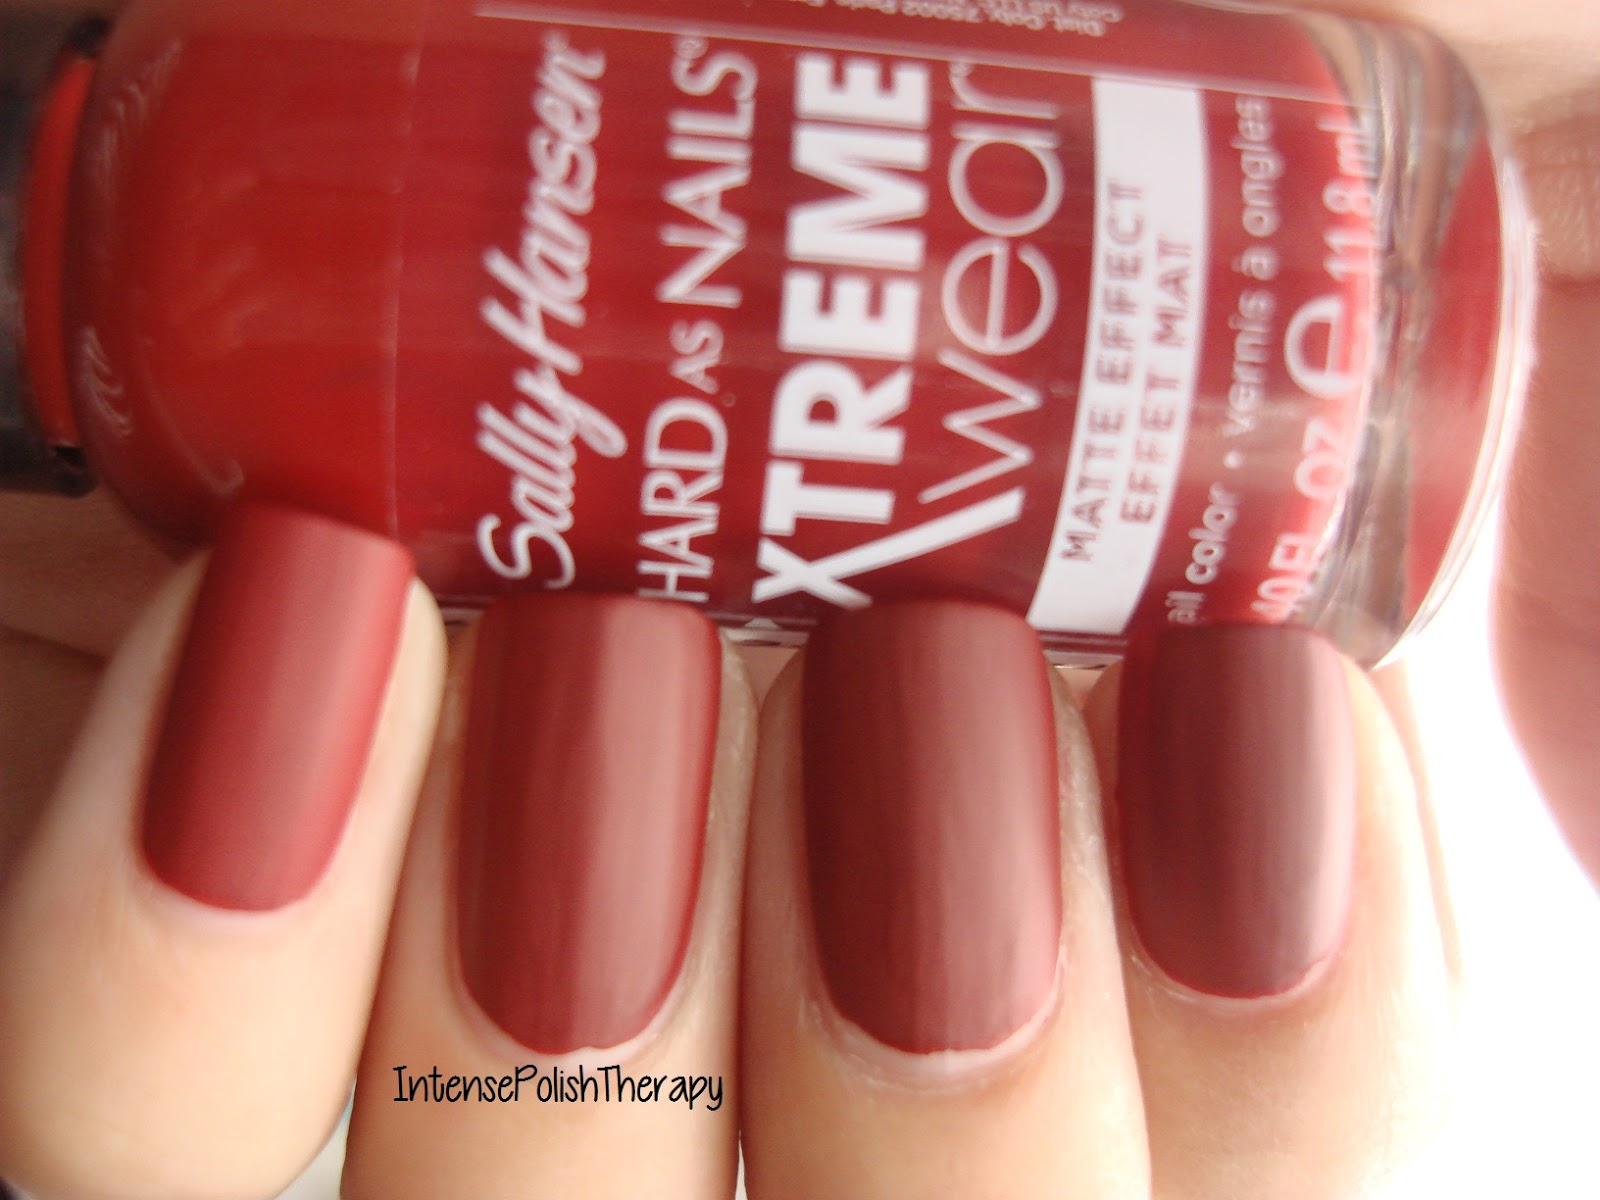 Sally Hansen - Wax Poetic